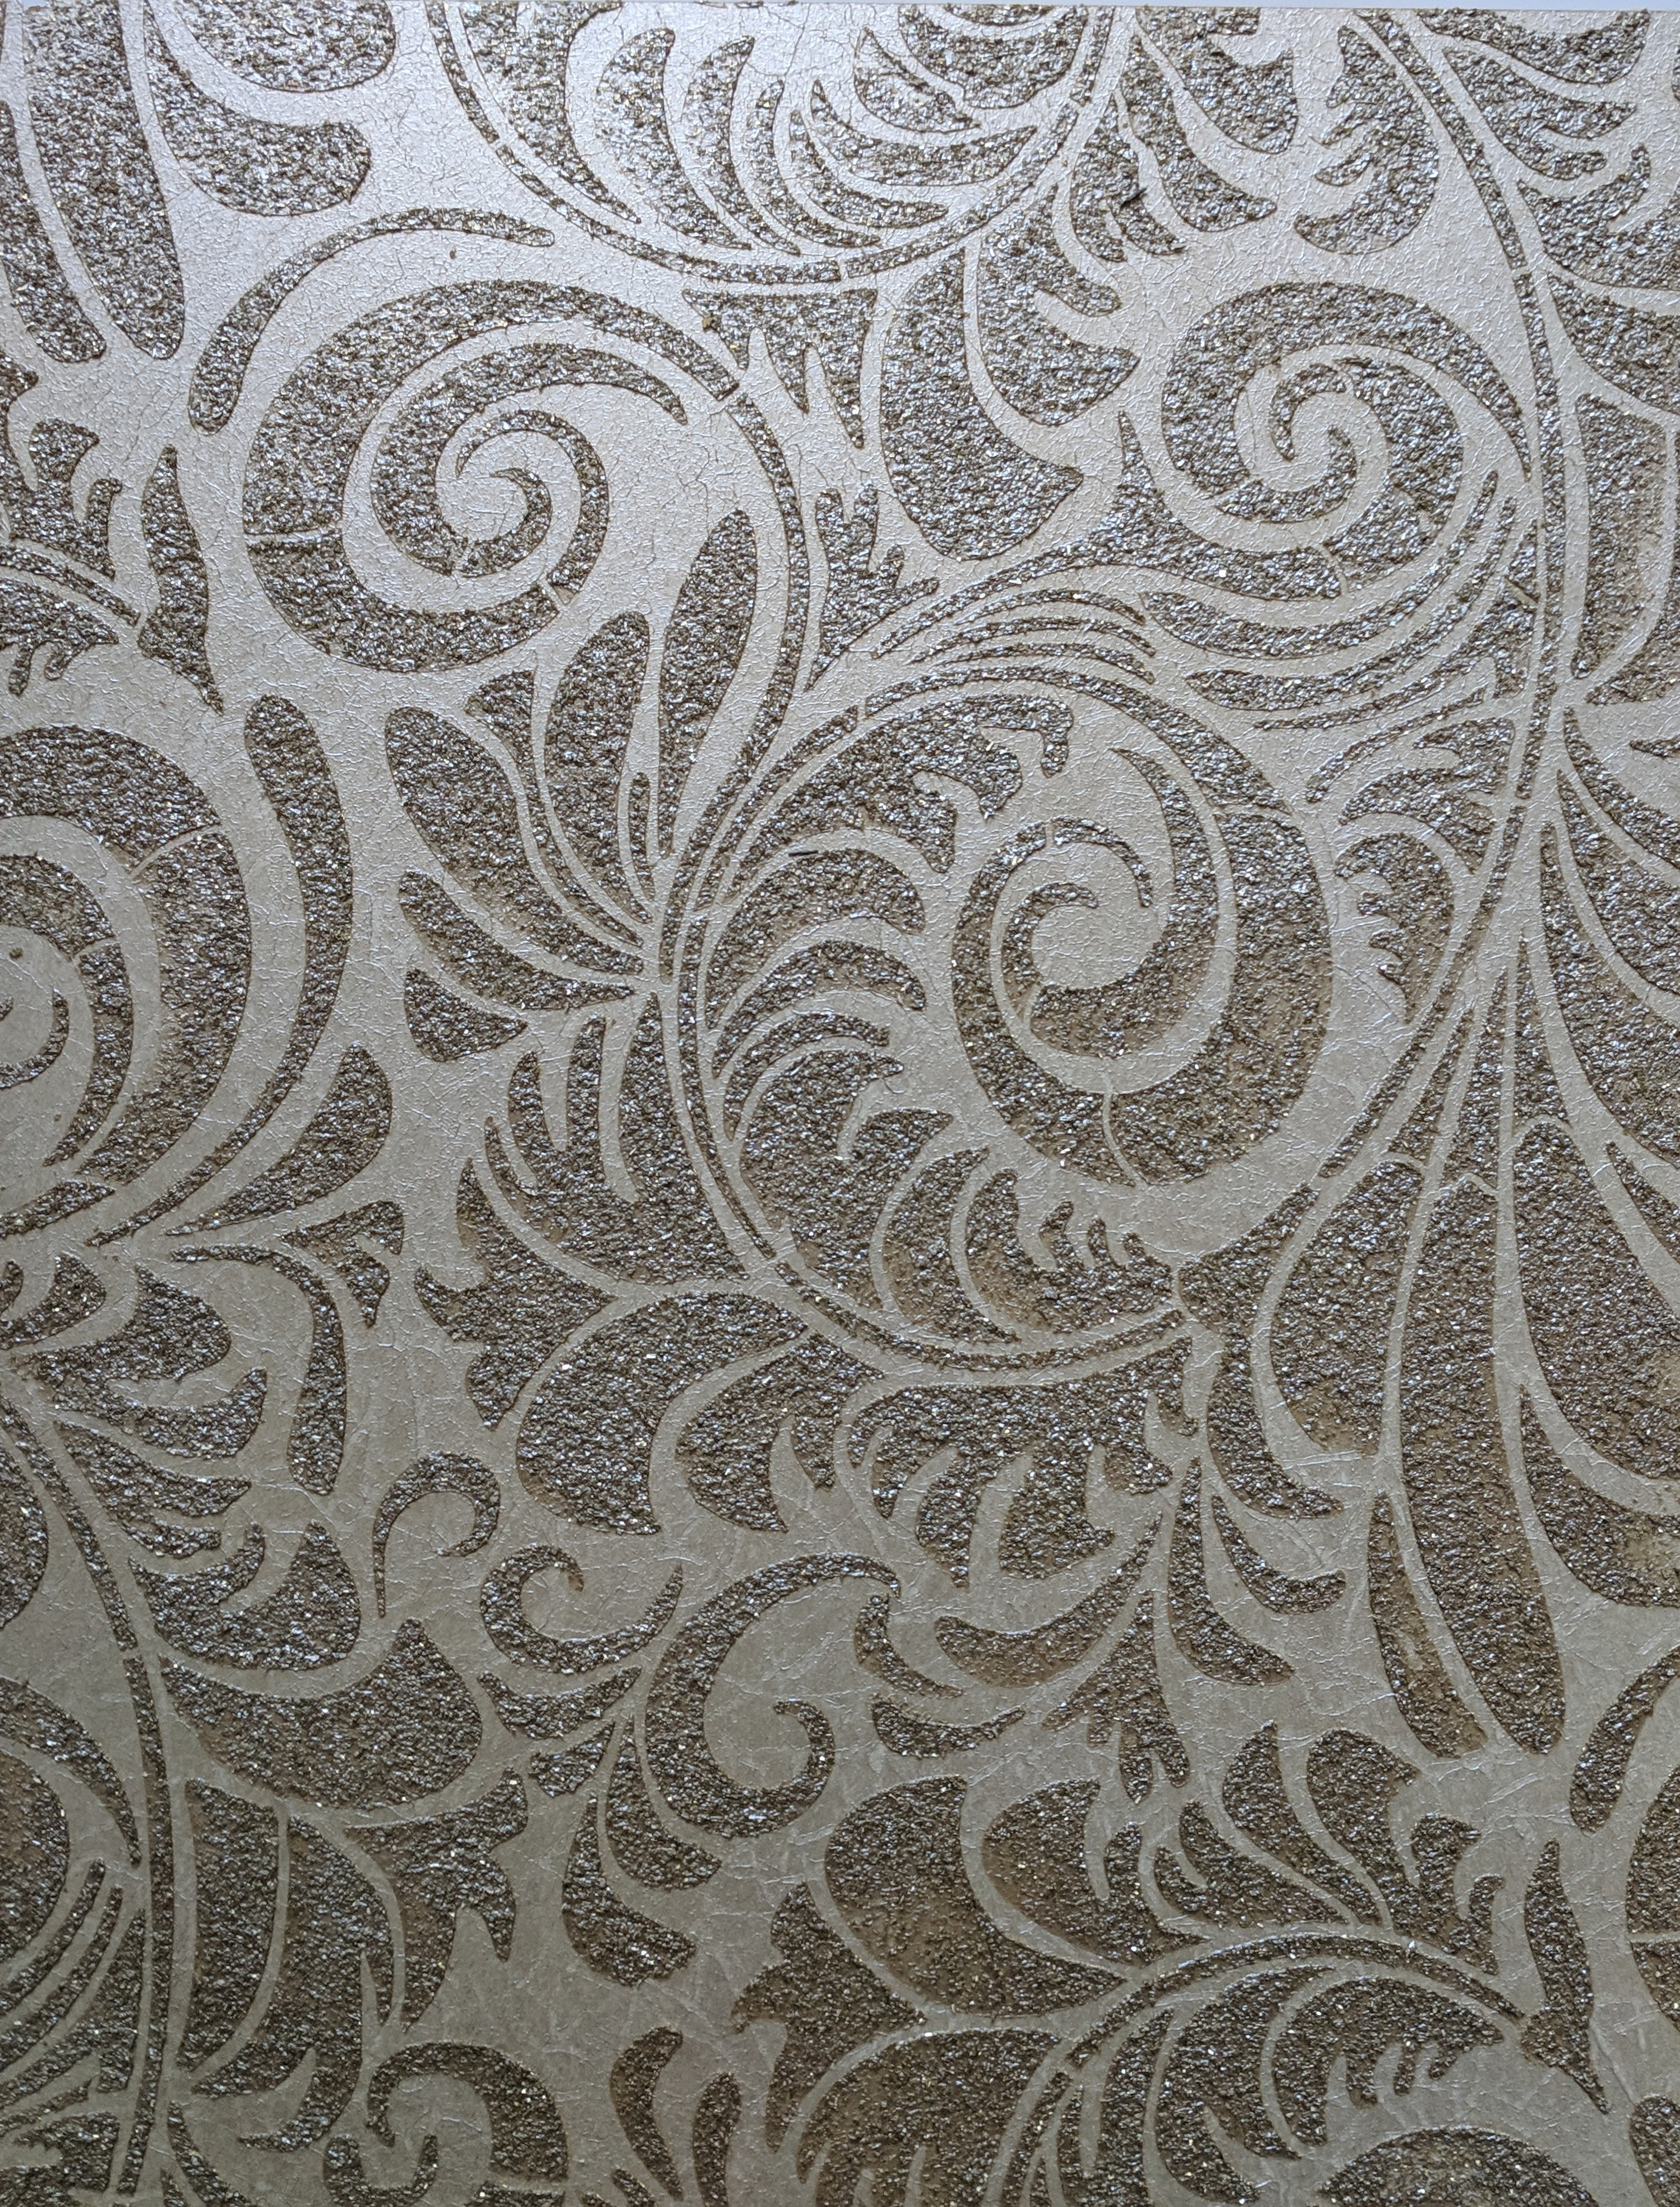 Glass  patterned plaster